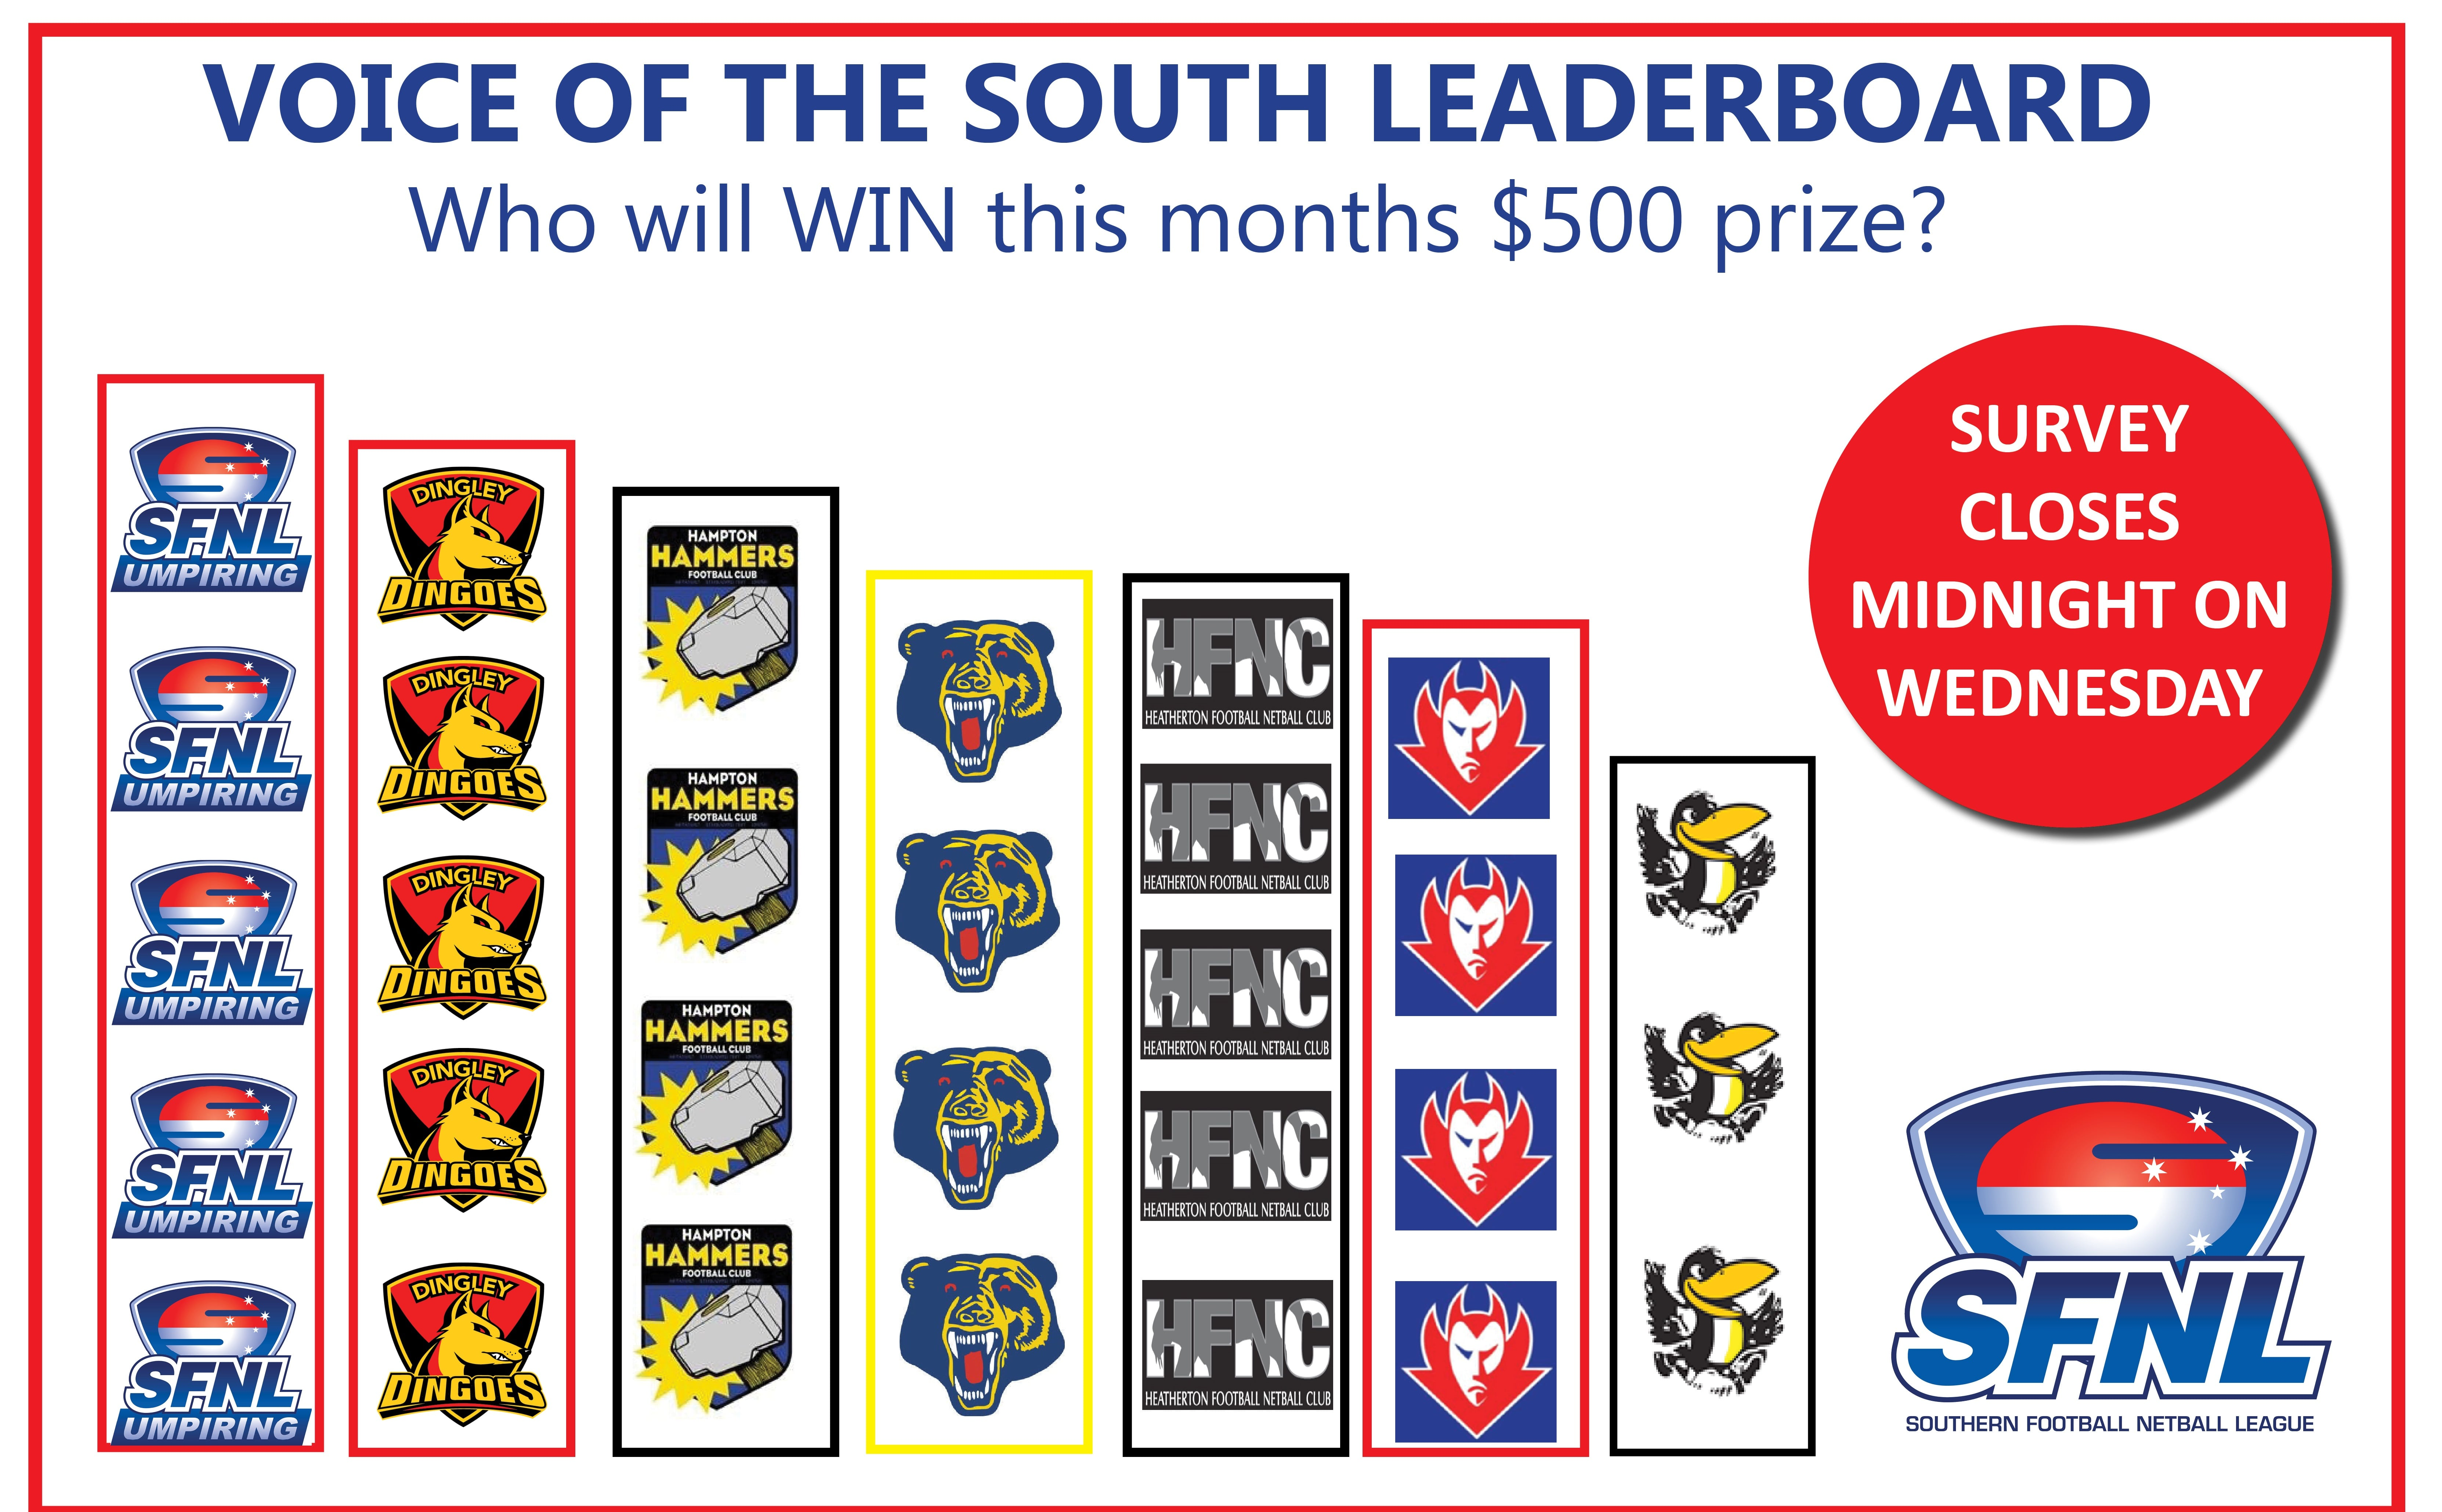 Voice of the South Leaderboard